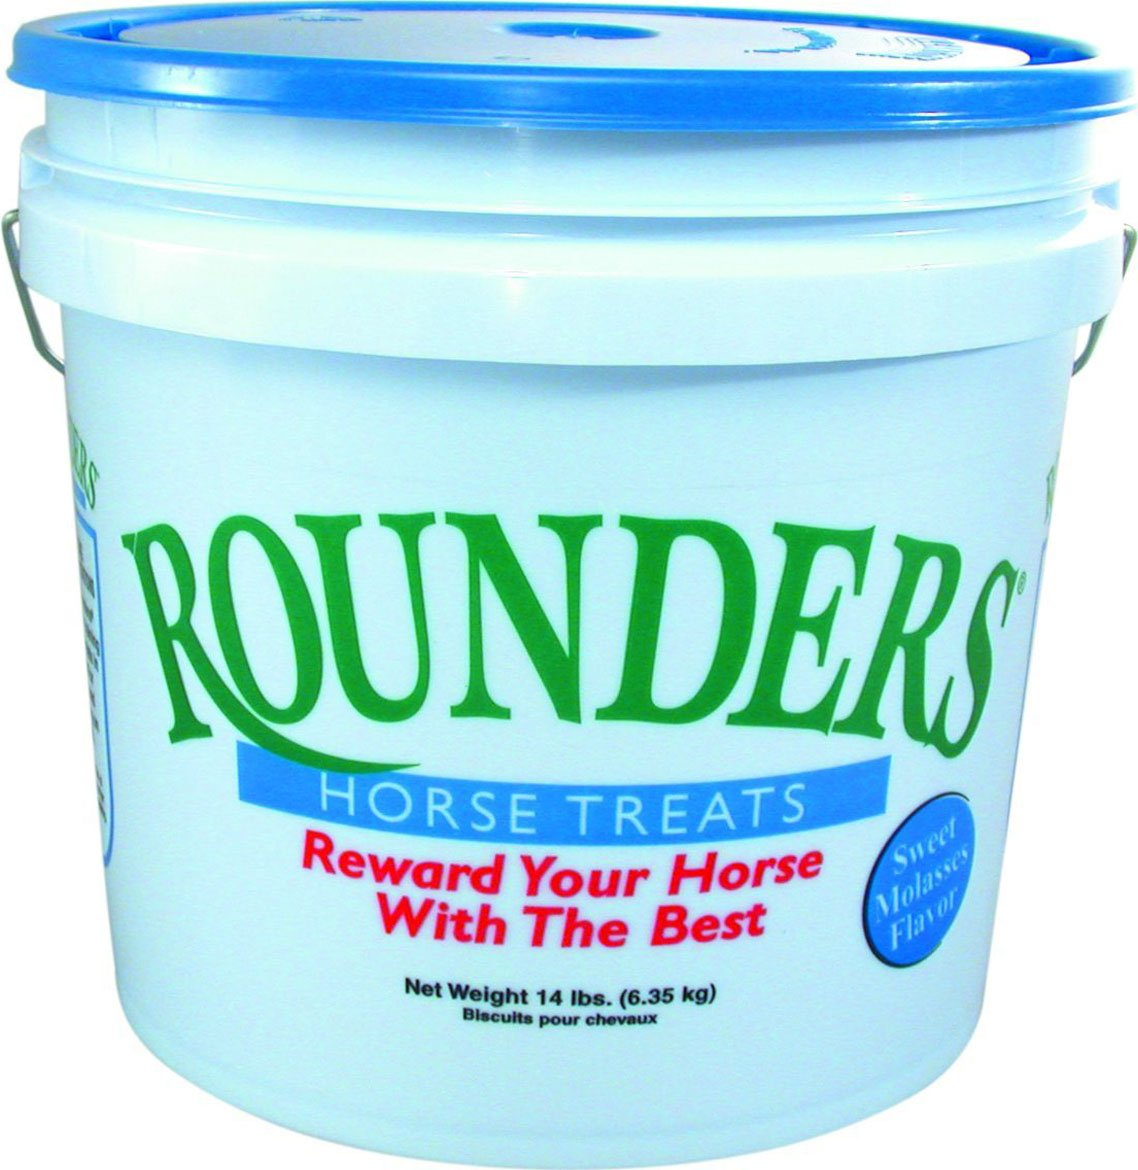 Kent Nutrition Group-Bsf 426 Molasses Rounder'S Horse Treat, 14 Lb by KENT NUTRITION GROUP/BSF (Image #1)